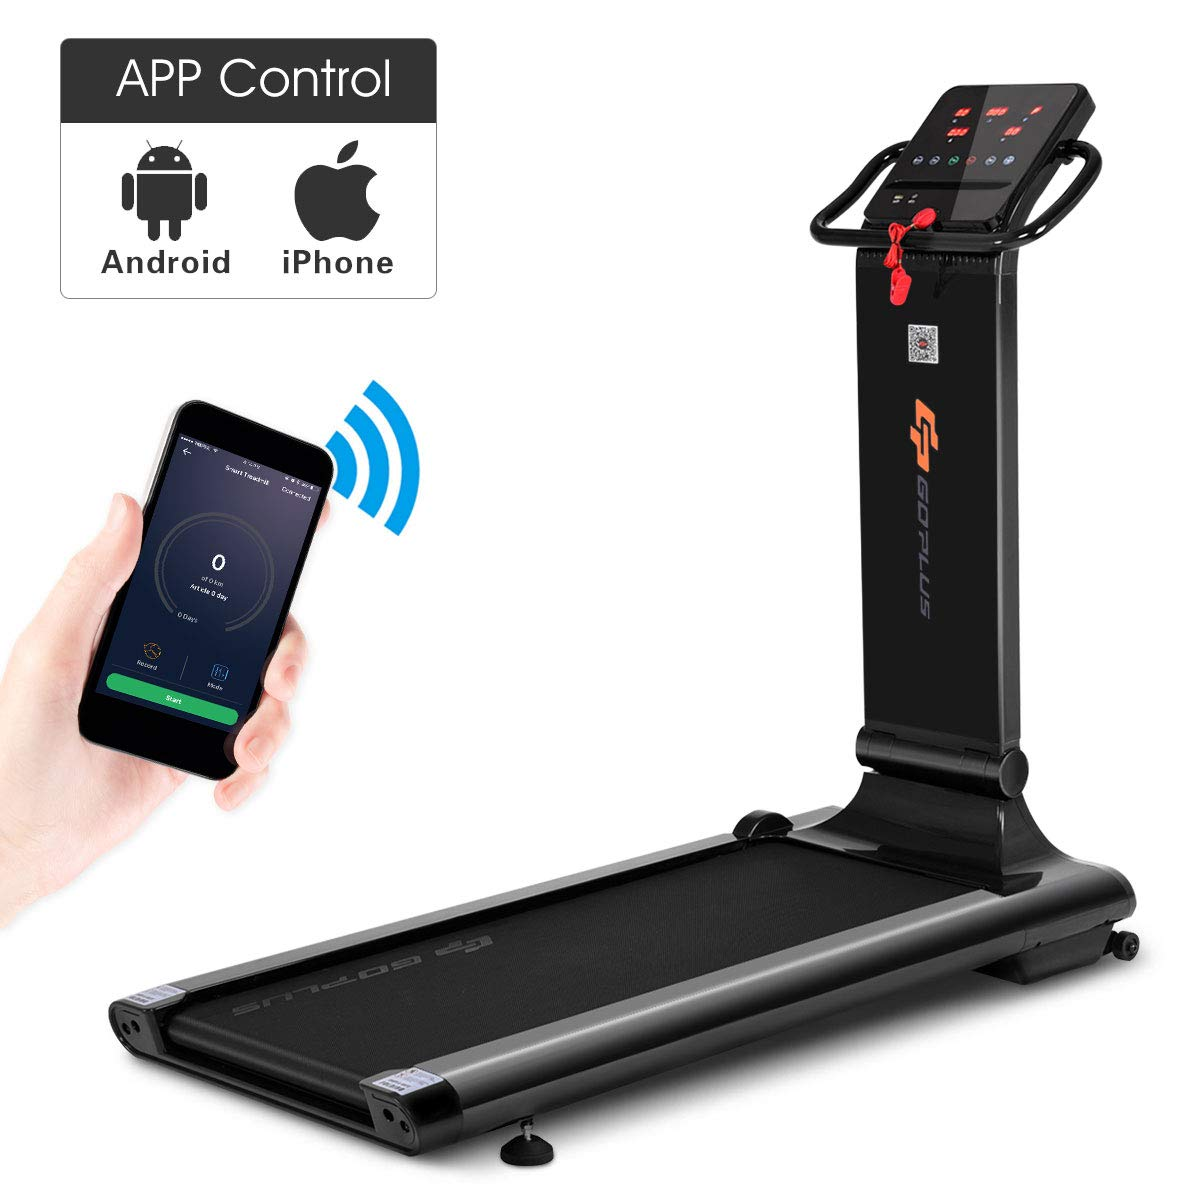 Goplus 1.5HP Electric Folding Treadmill Portable Motorized Running Machine Home Gym Cardio Fitness w/App (Black) by Goplus (Image #1)